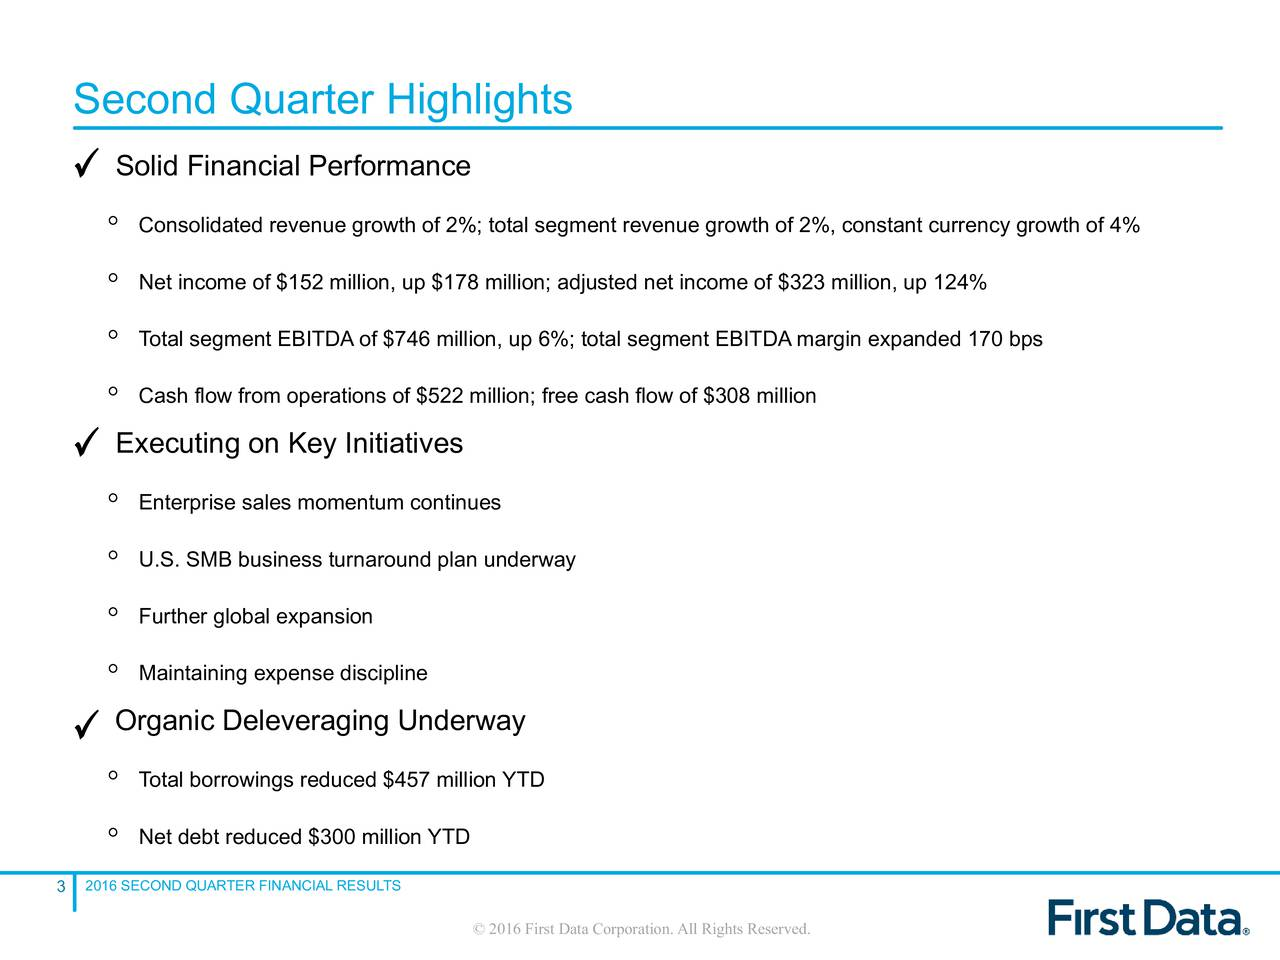 Solid Financial Performance Consolidated revenue growth of 2%; total segment revenue growth of 2%, constant currency growth of 4% Net income of $152 million, up $178 million; adjusted net income of $323 million, up 124% Total segment EBITDA of $746 million, up 6%; total segment EBITDA margin expanded 170 bps Cash flow from operations of $522 million; free cash flow of $308 million Executing on Key Initiatives Enterprise sales momentum continues U.S. SMB business turnaround plan underway Further global expansion Maintaining expense discipline Organic Deleveraging Underway Total borrowings reduced $457 million YTD Net debt reduced $300 million YTD 2016 SECOND QUARTER FINANCIAL RESULTS 3 2016 First Data Corporation.All Rights Reserved.